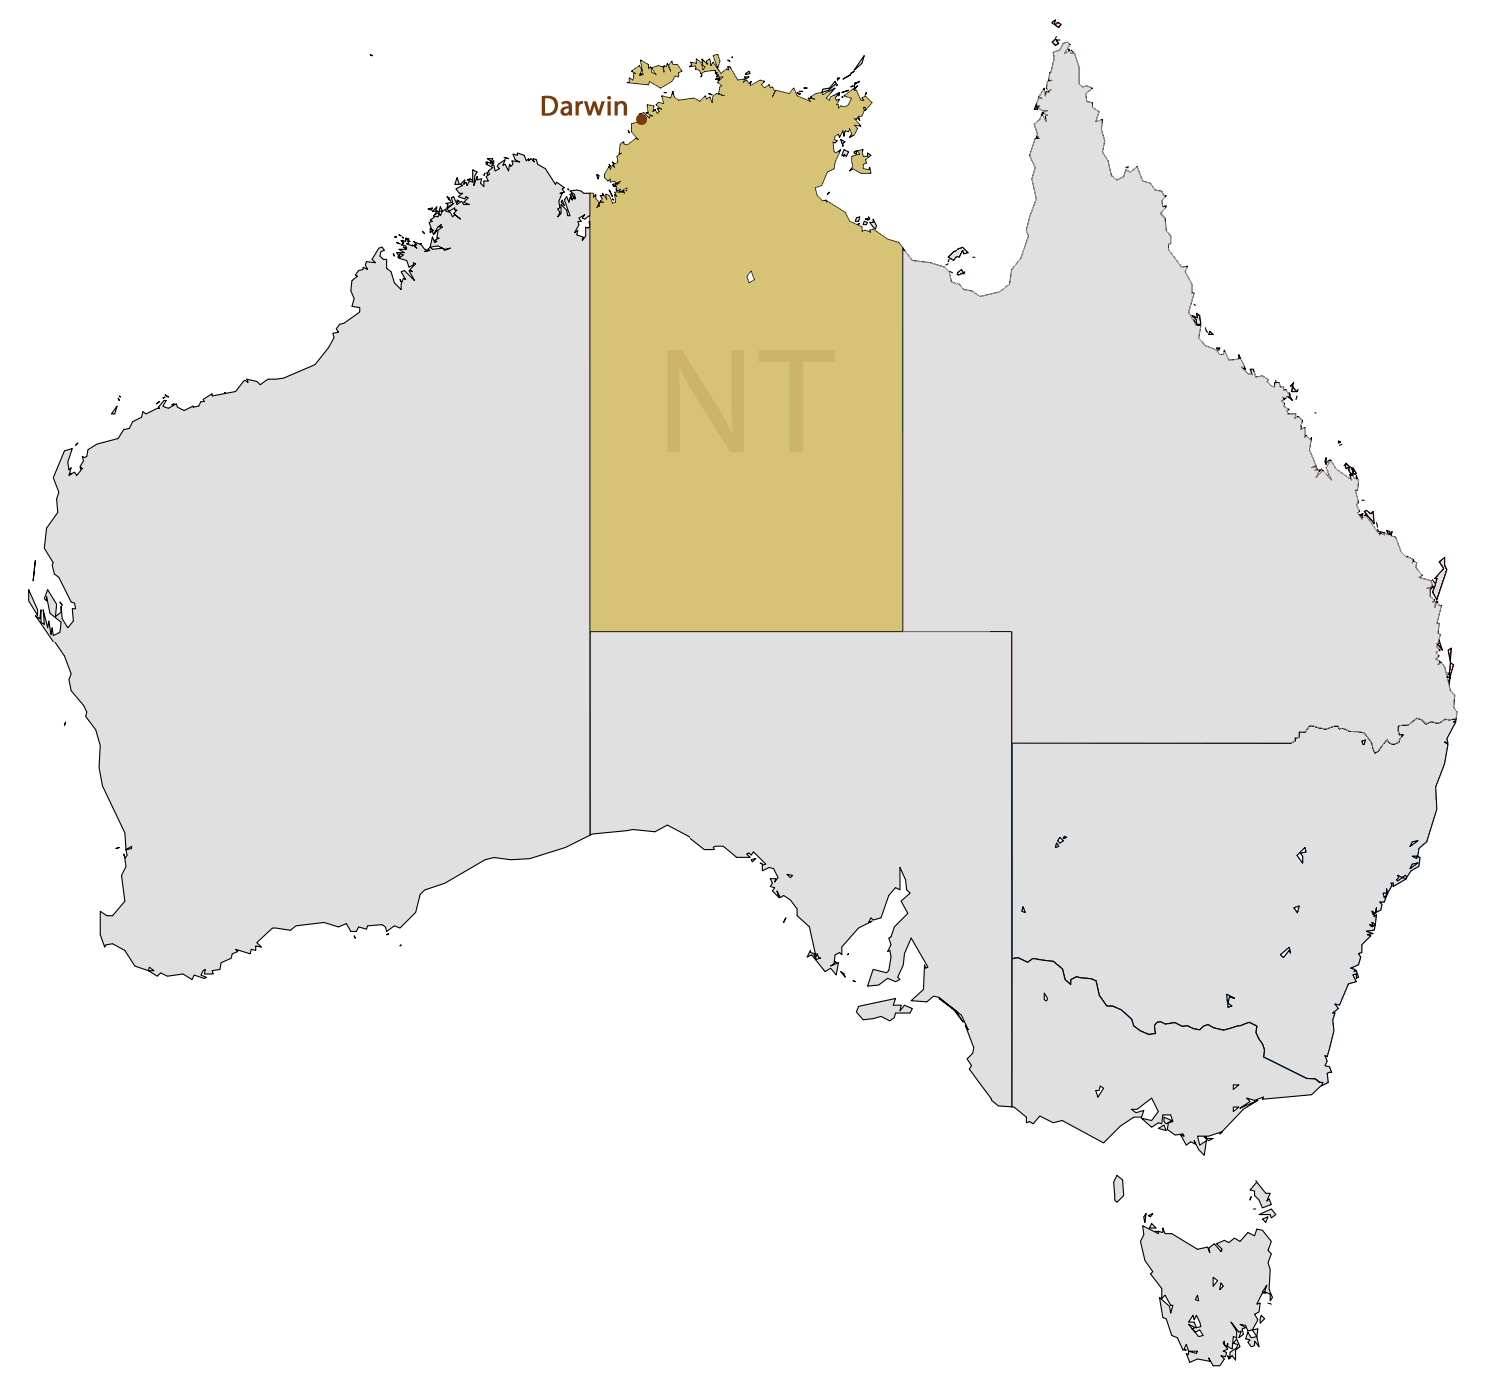 Location Map of Darwin Mapsofnet